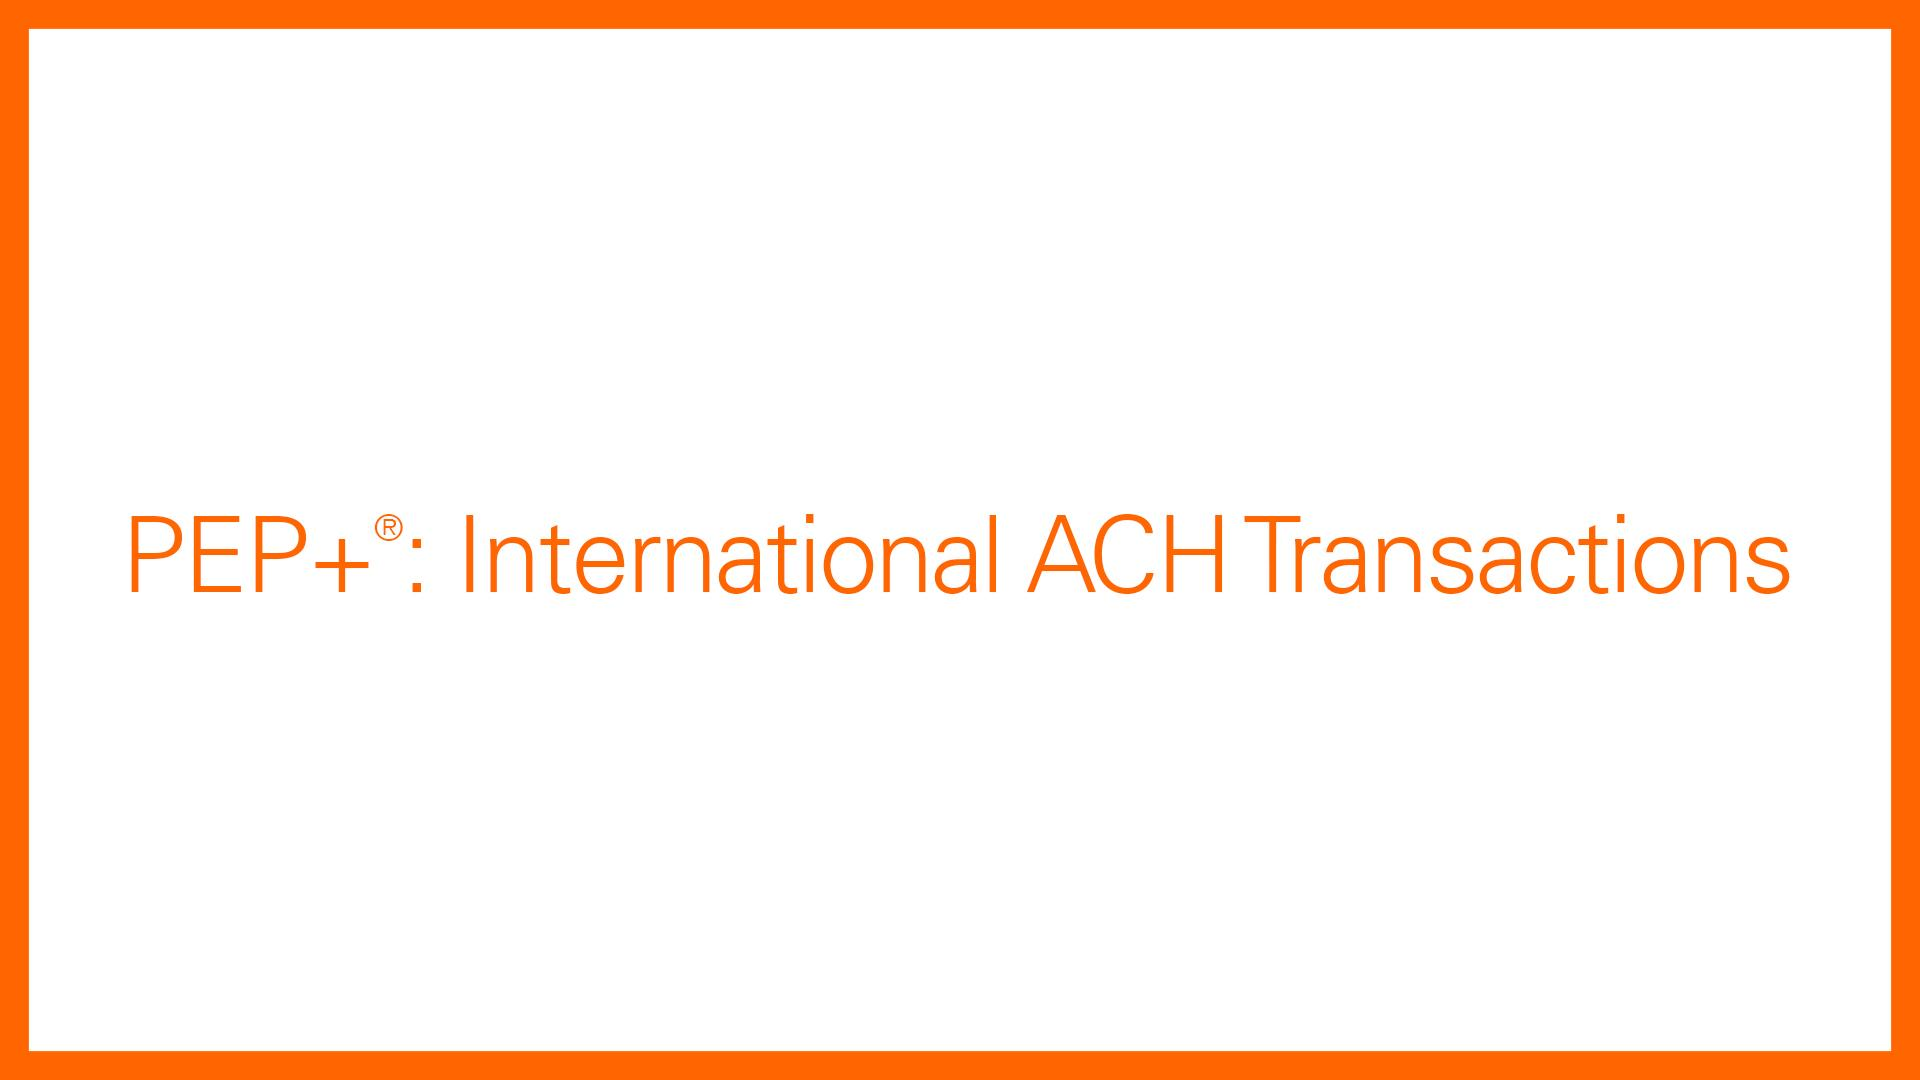 PEP+: International ACH Transactions Overview | Fiserv